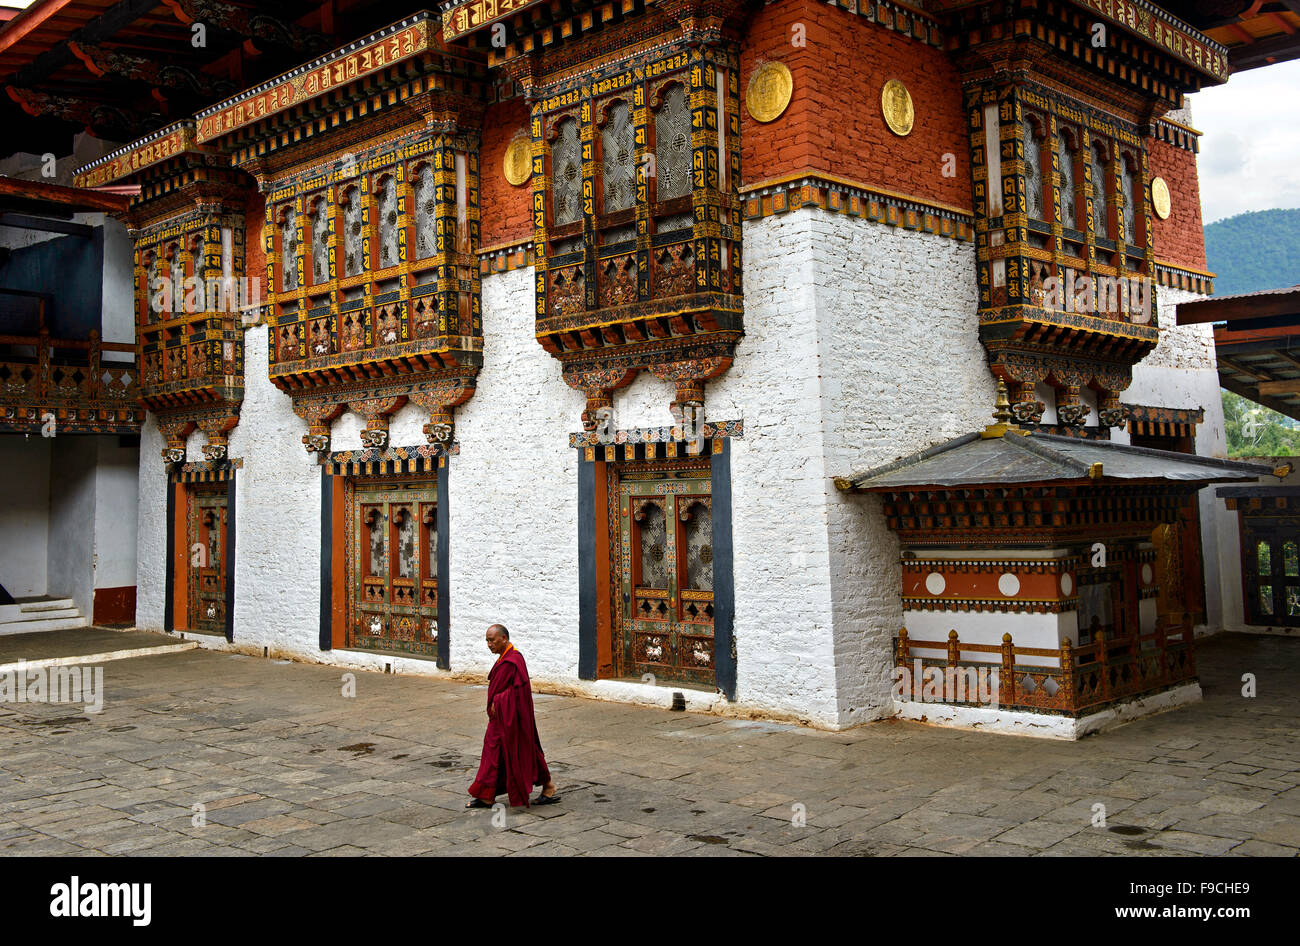 Buddhist monk striding through the courtyard of the monastery and fortress Punakha Dzong, Punakah, Bhutan - Stock Image